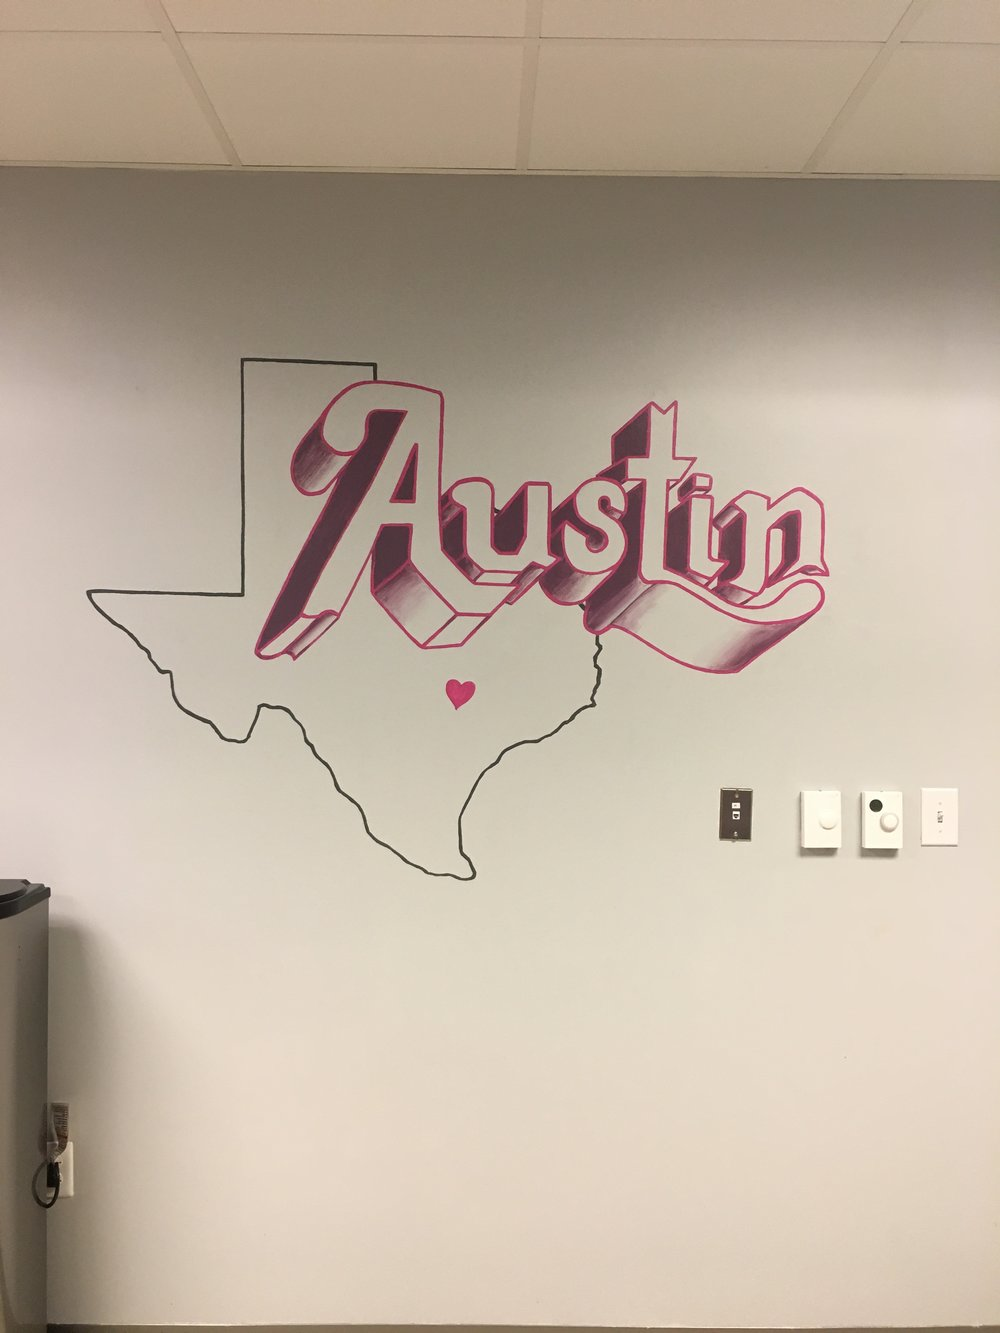 Deep in the Heart of Austin